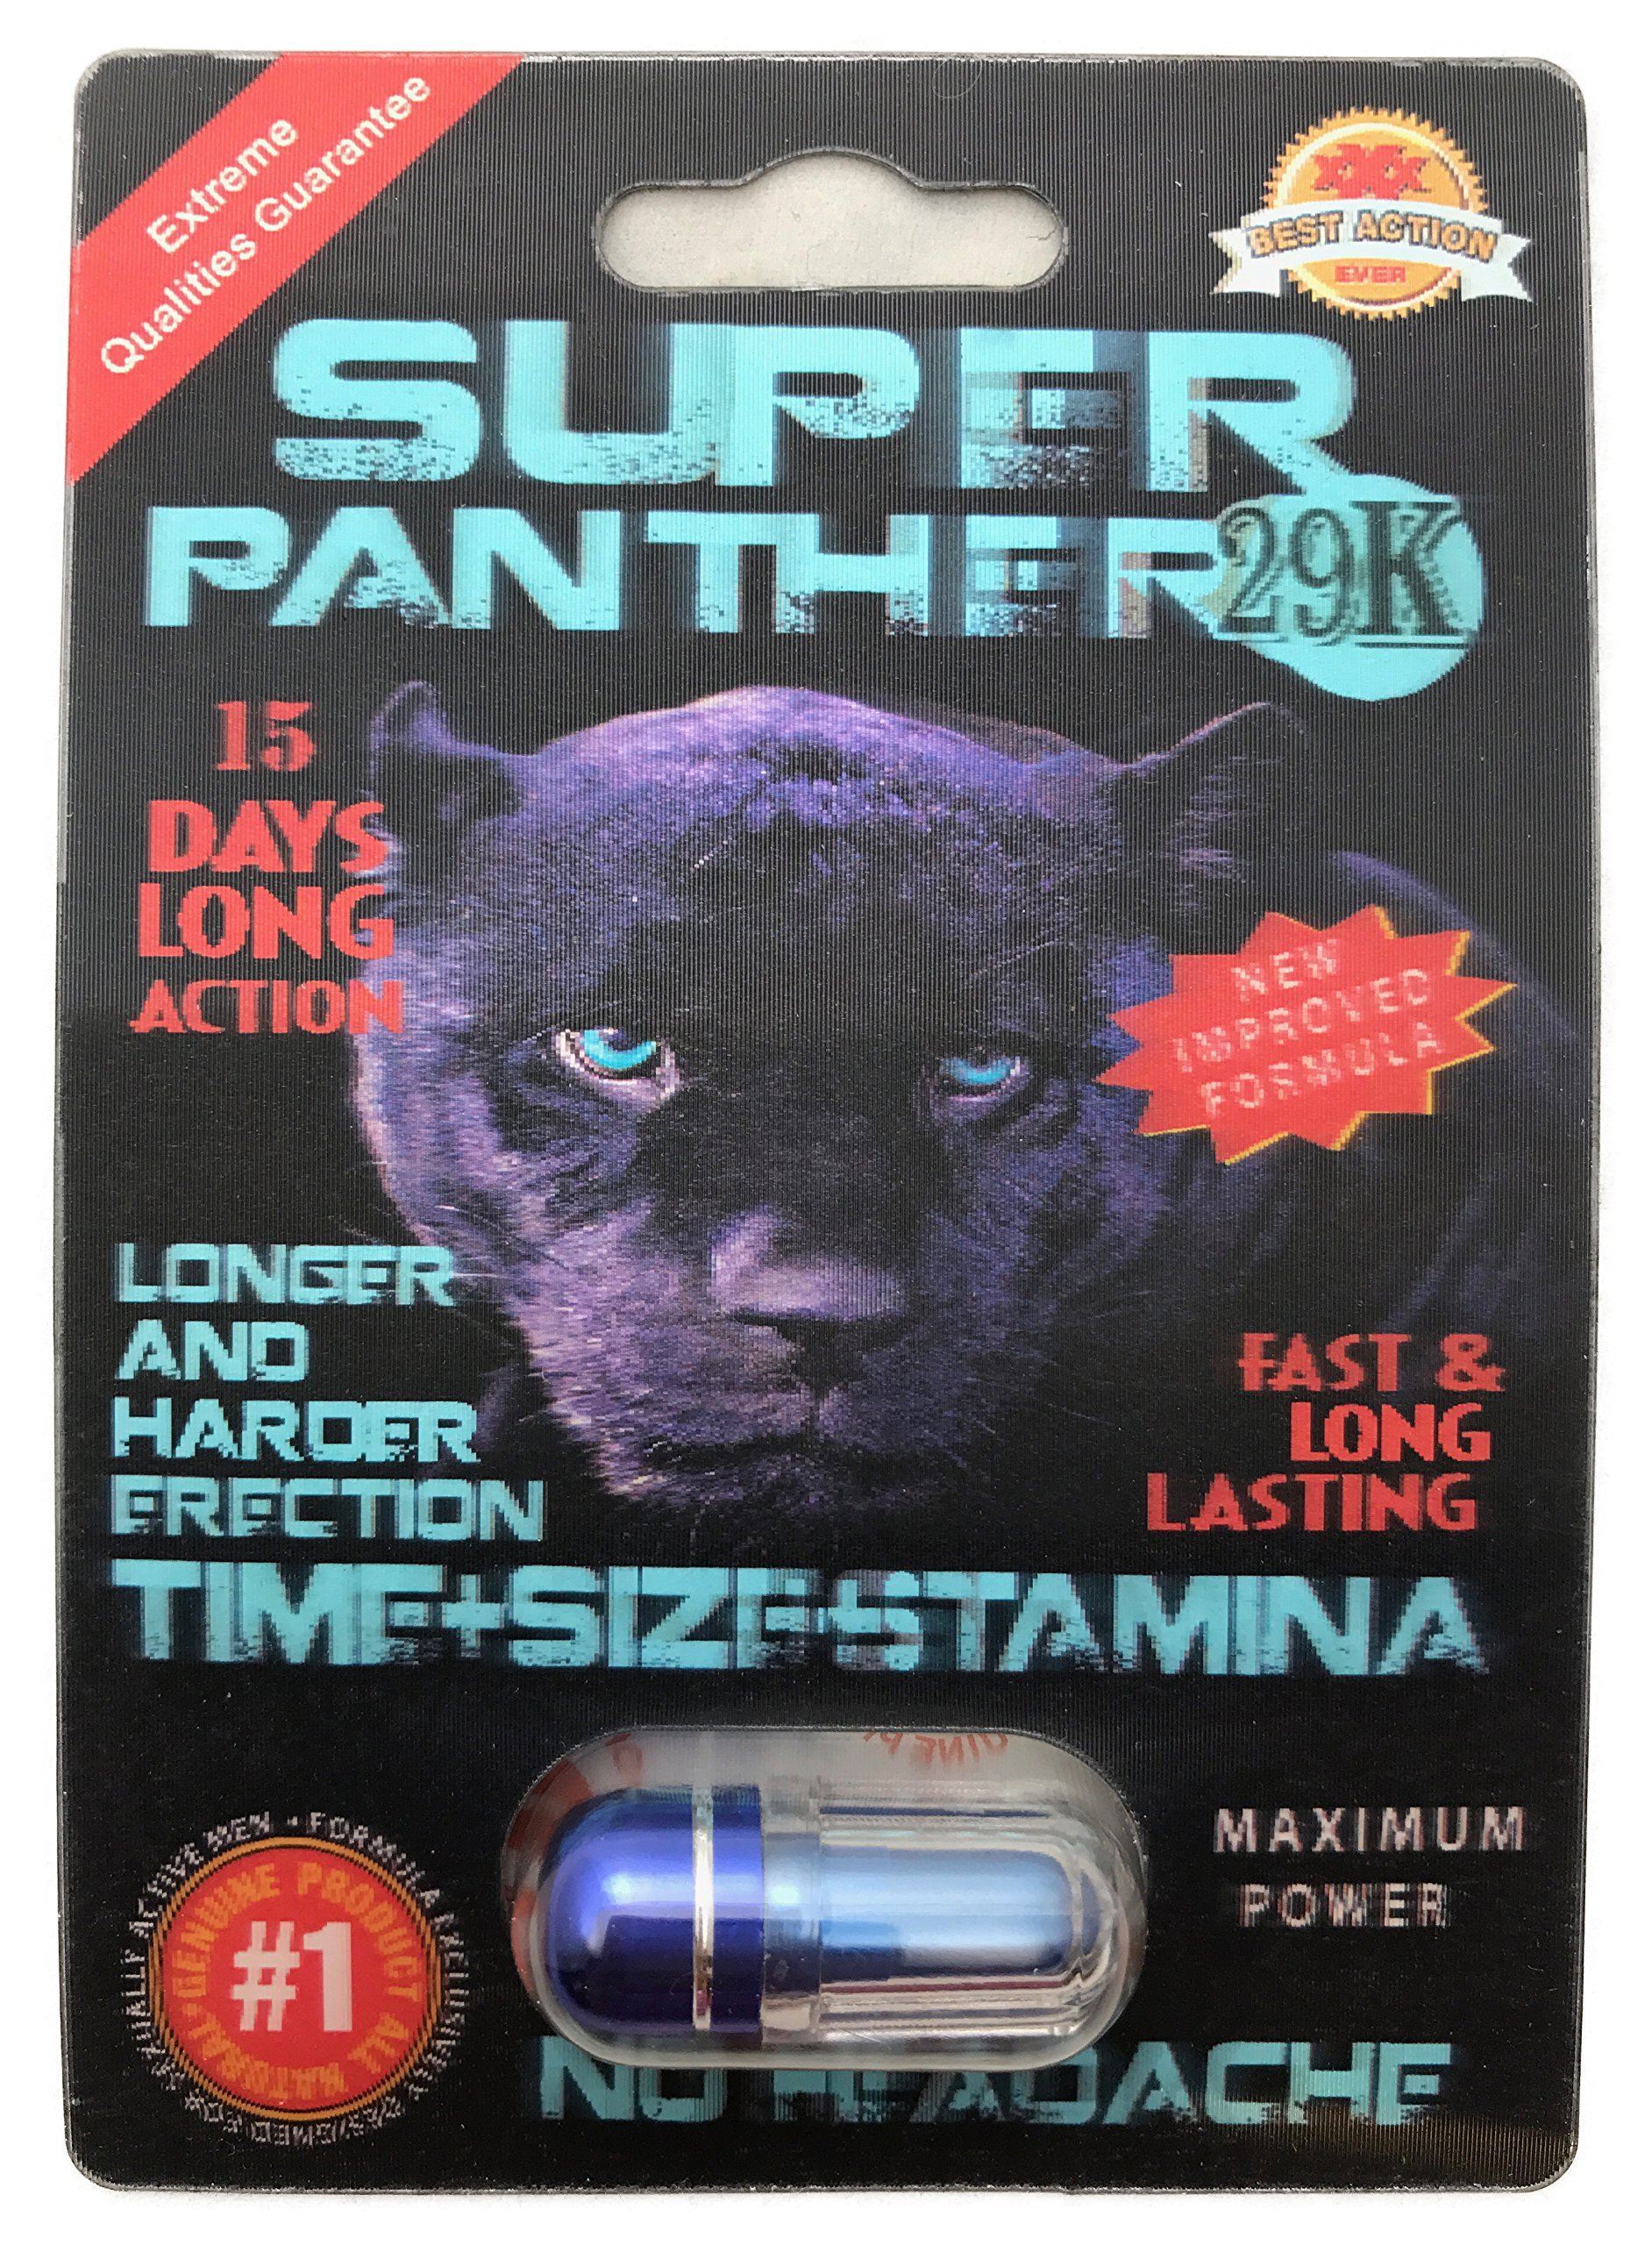 NEW Arrival - Super Panther 29K 3D - Feel even MORE POWER - Time Size Stamina - (20 Pack) LIMITED EDITION PLUS FREE LOVE POTION EXCLUSIVE PEN